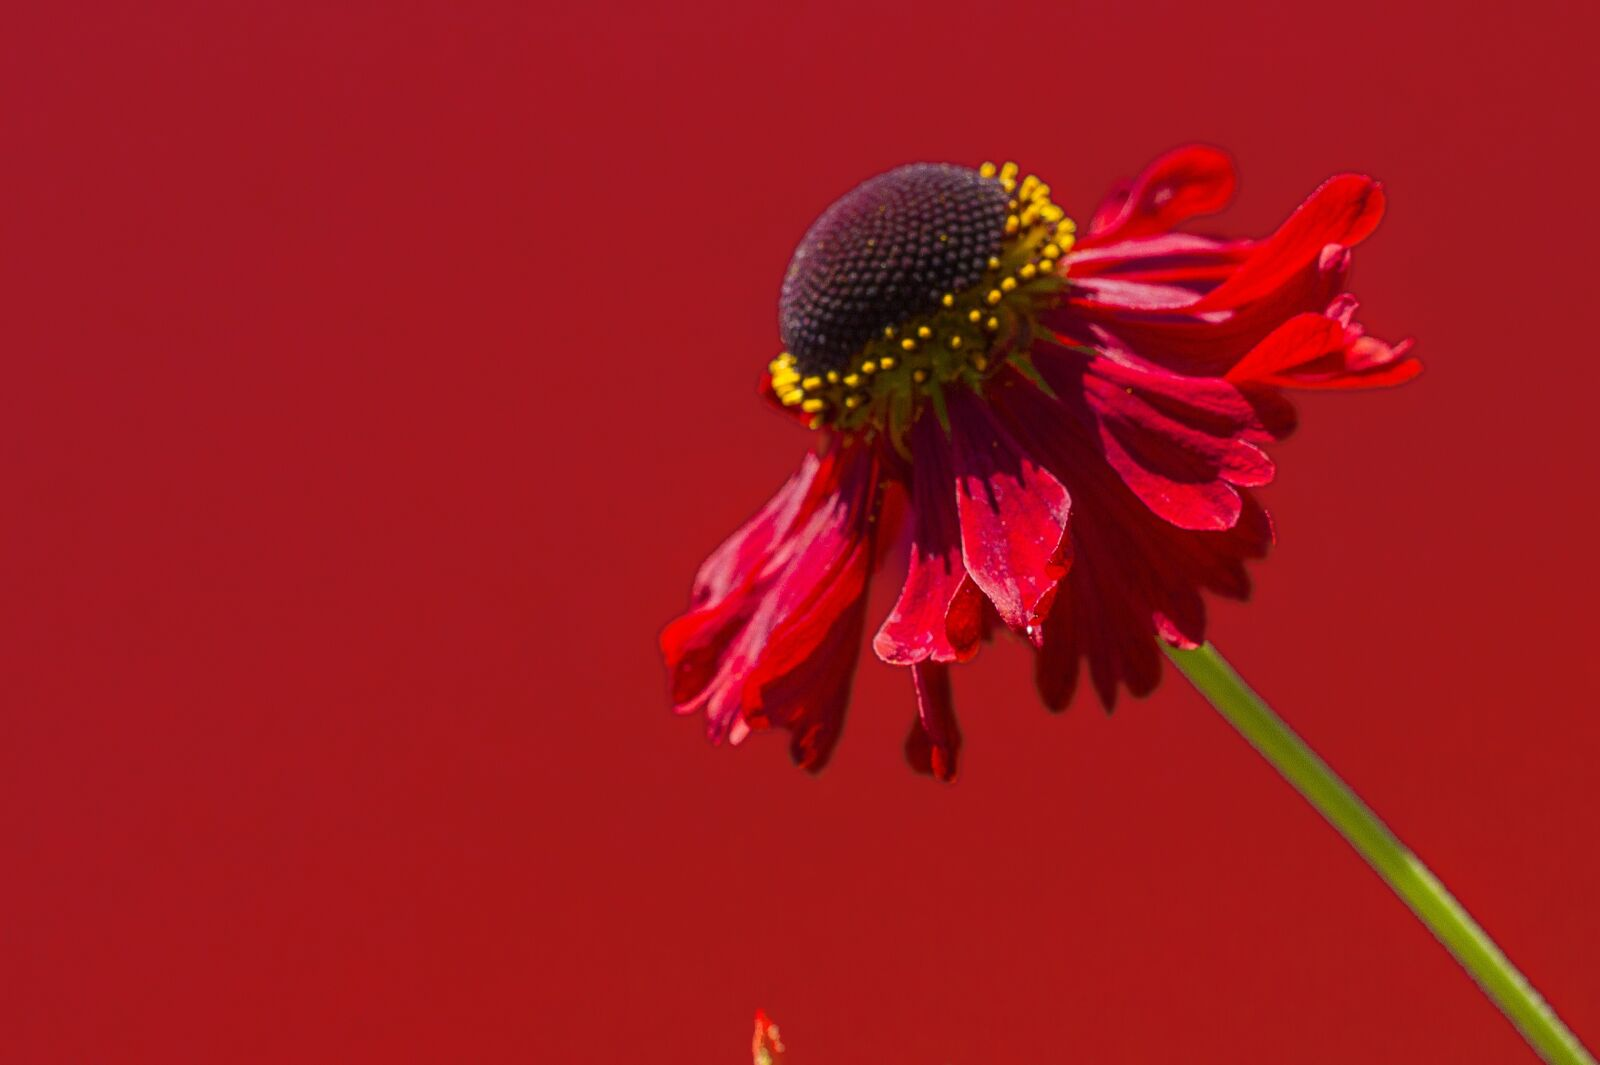 """Canon EOS 7D sample photo. """"Flower, red, love"""" photography"""